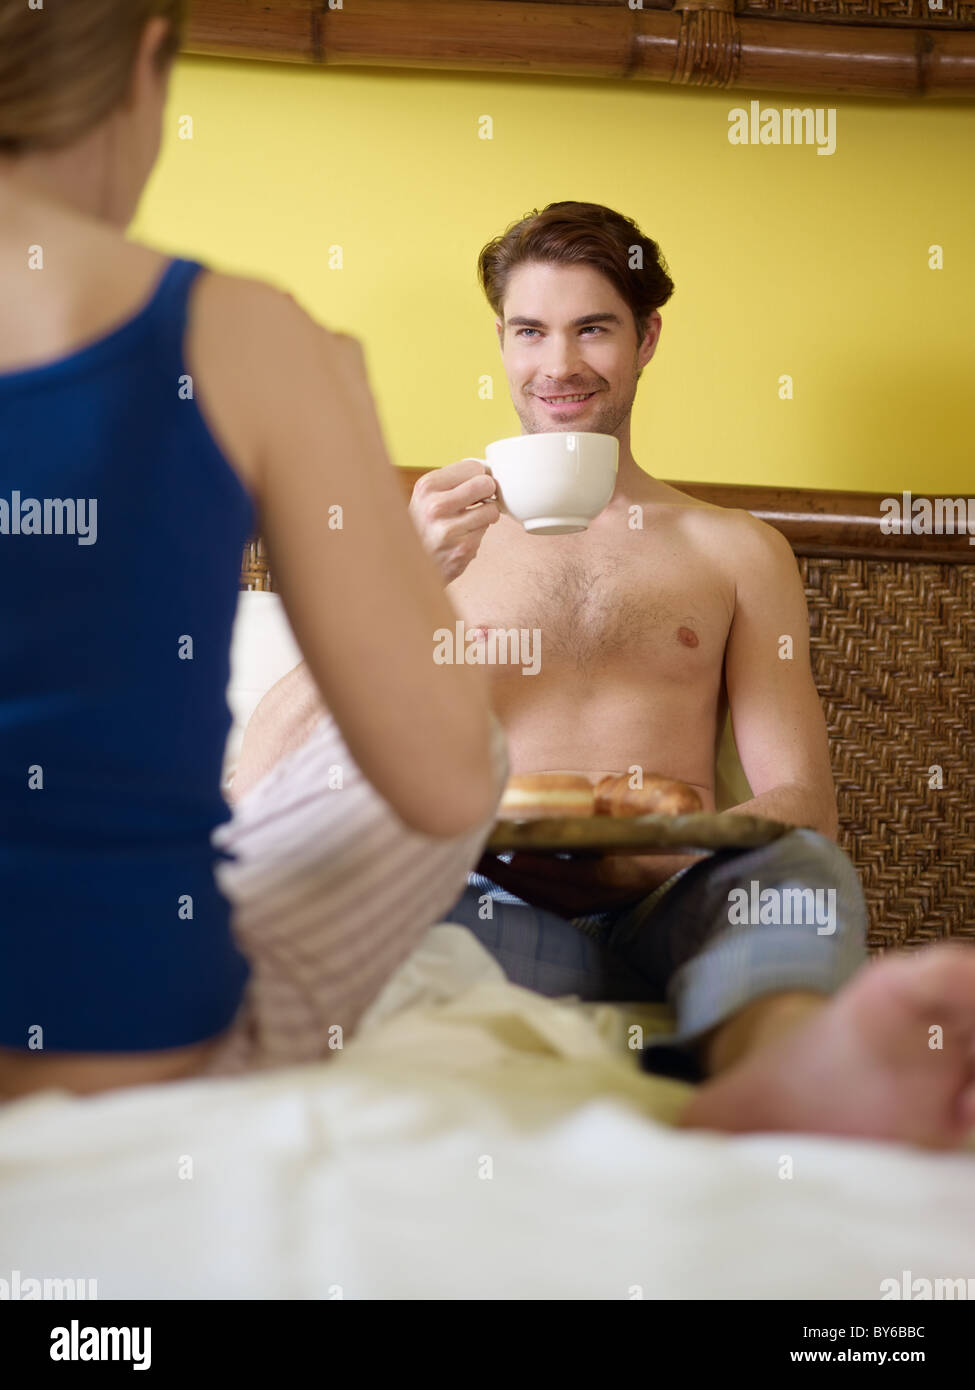 caucasian heterosexual couple eating croissant and drinking coffee in bed. Vertical shape, rear view, focus on background Stock Photo